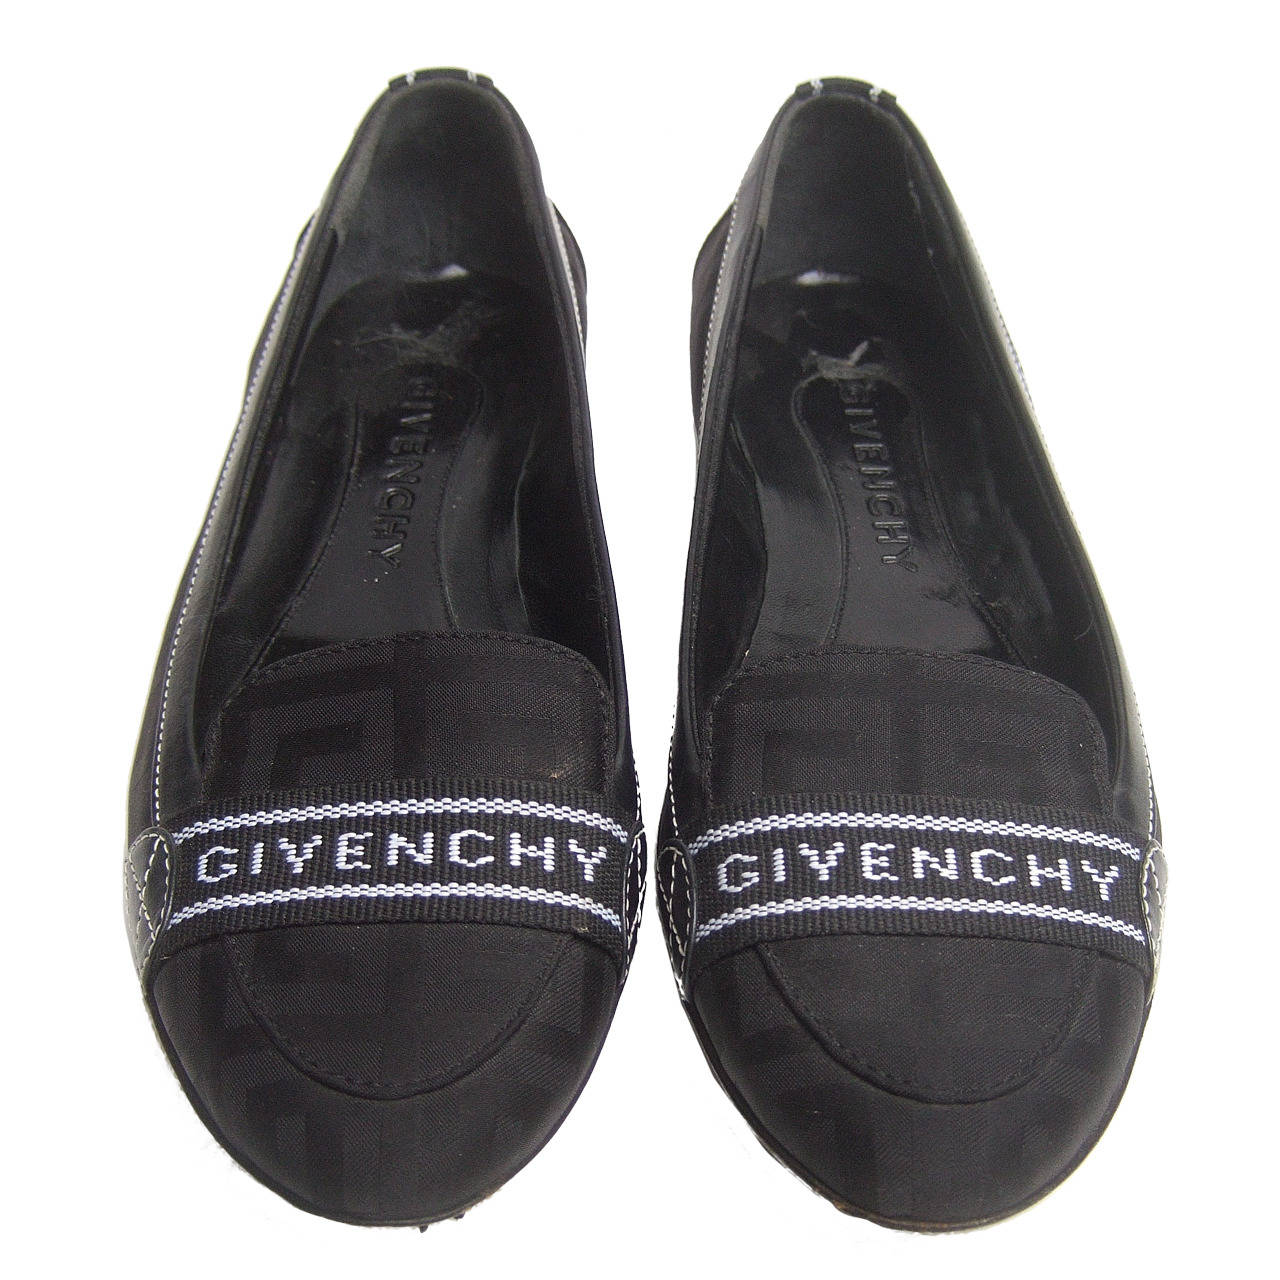 Givenchy Black Canvas Skimmer Flats Made in Italy Size 38.5 For Sale